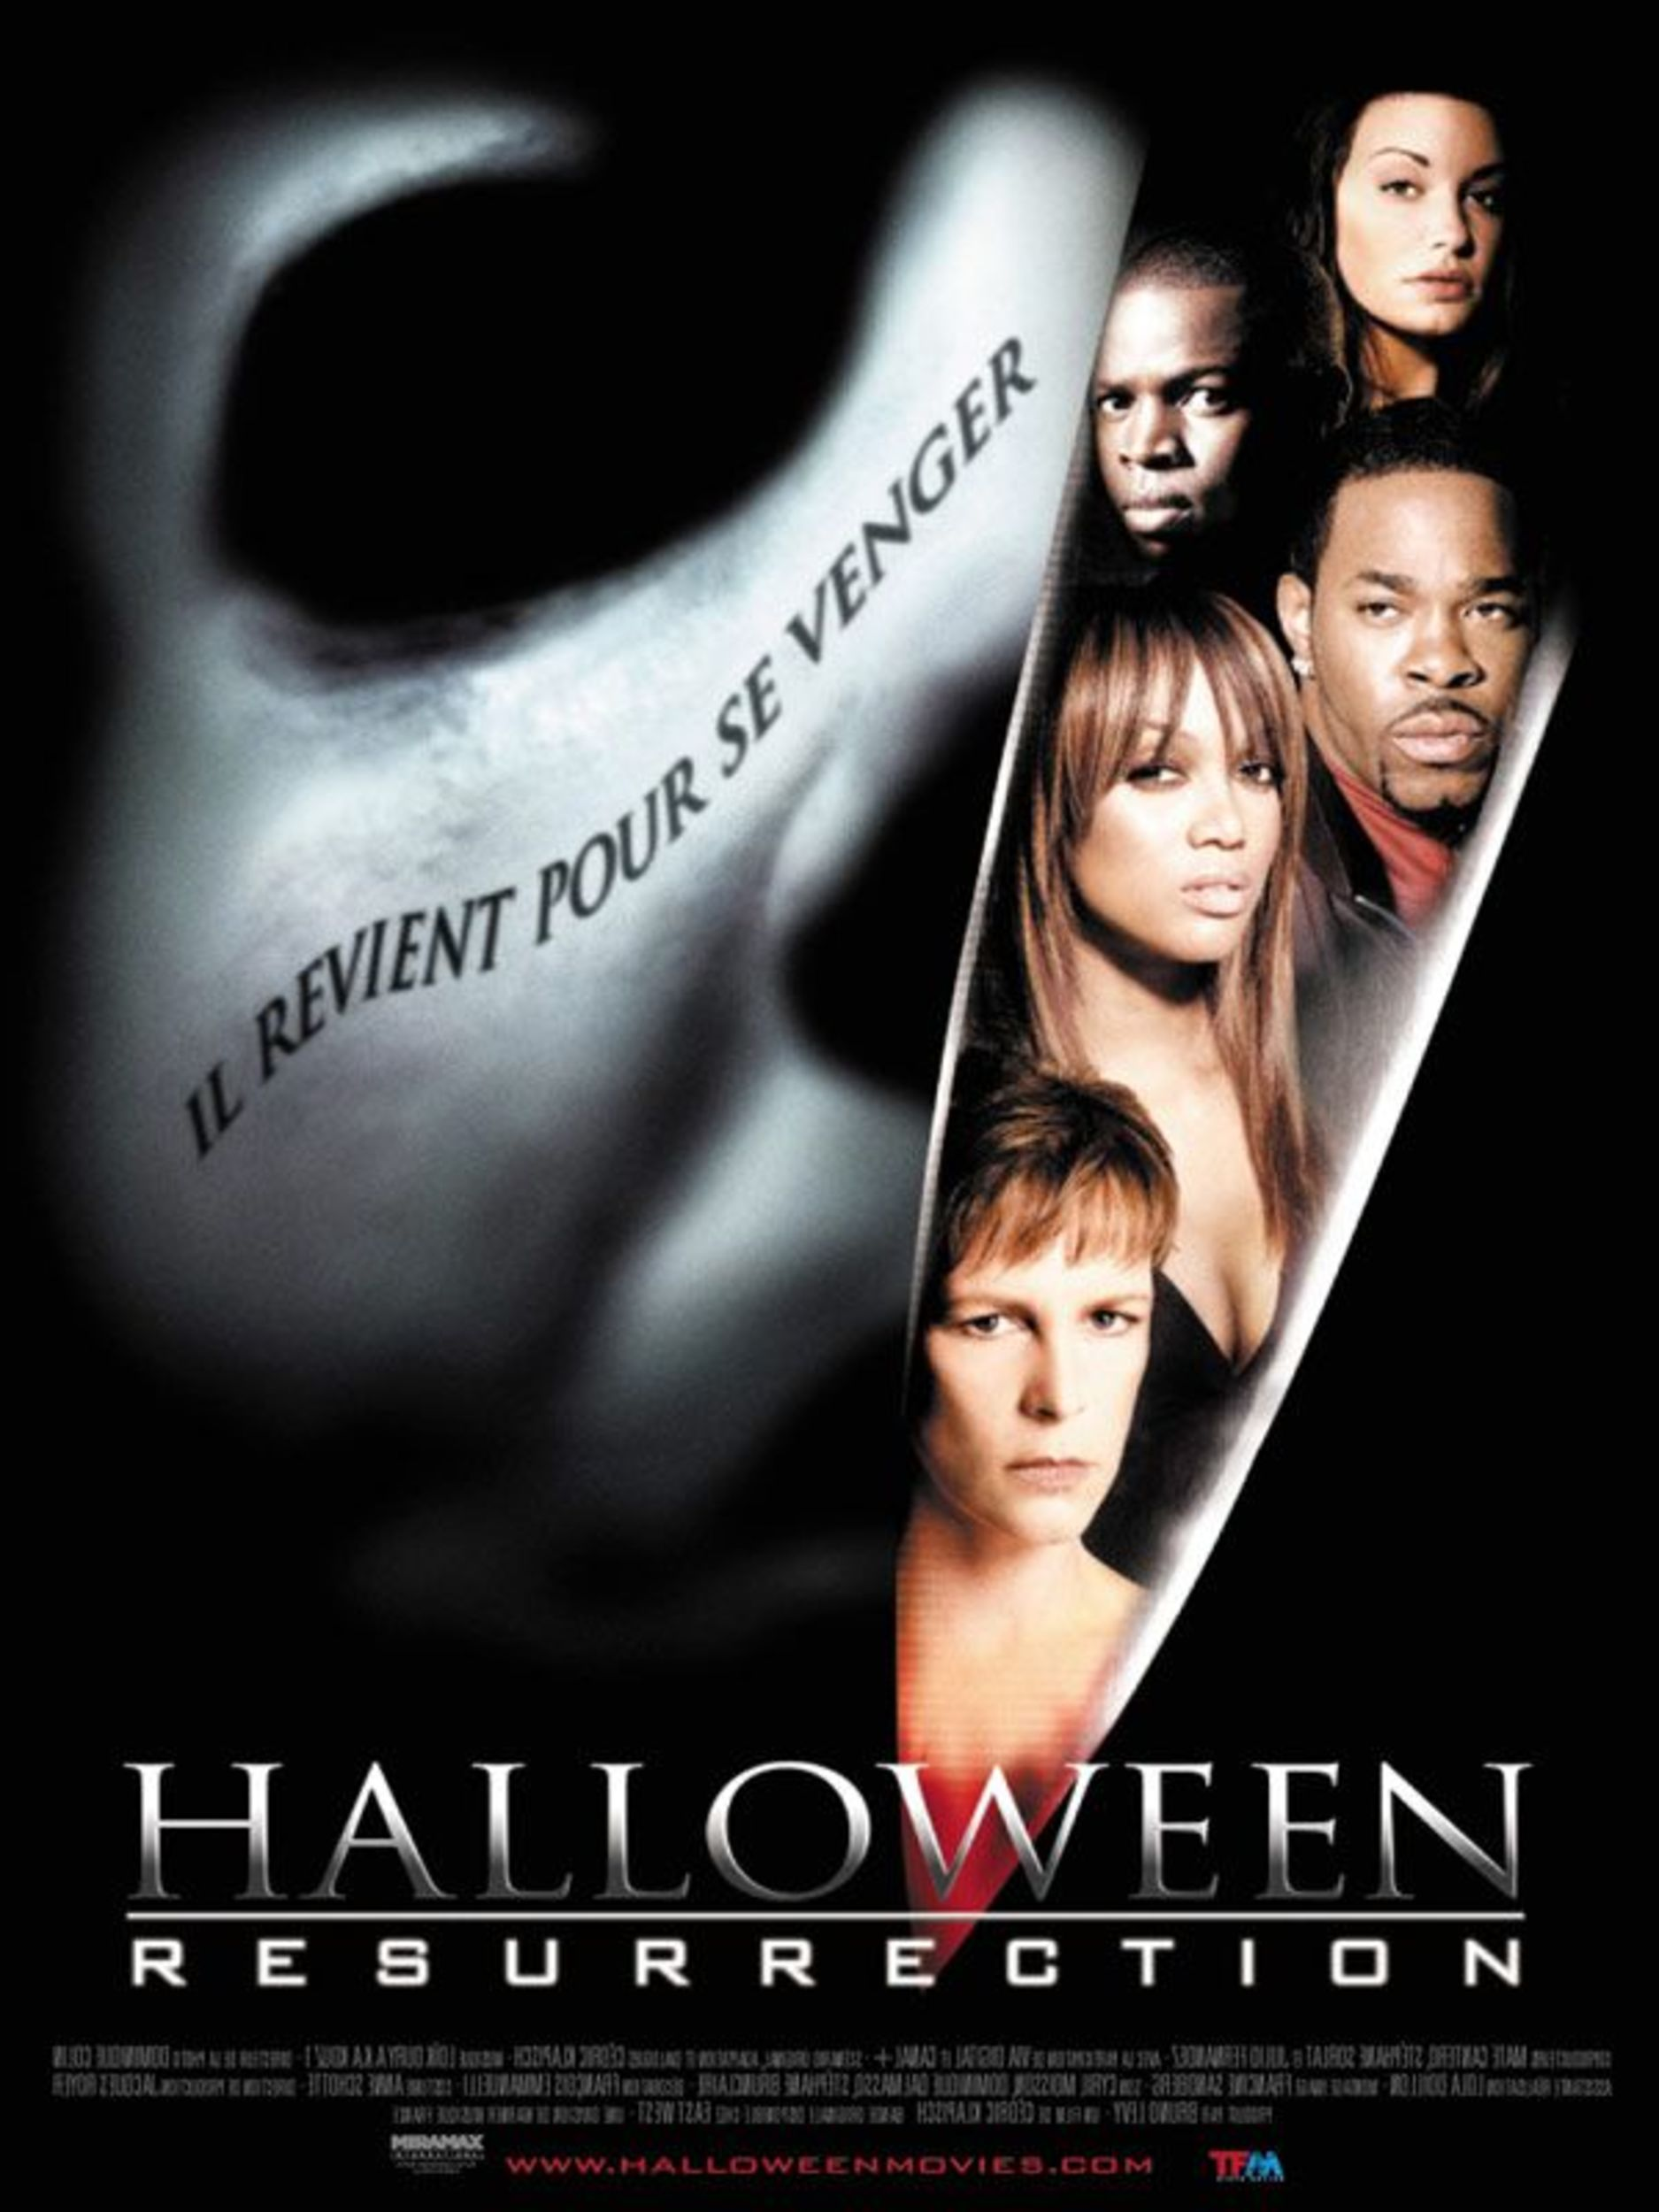 Affiche Poster halloween resurrection disney dimension